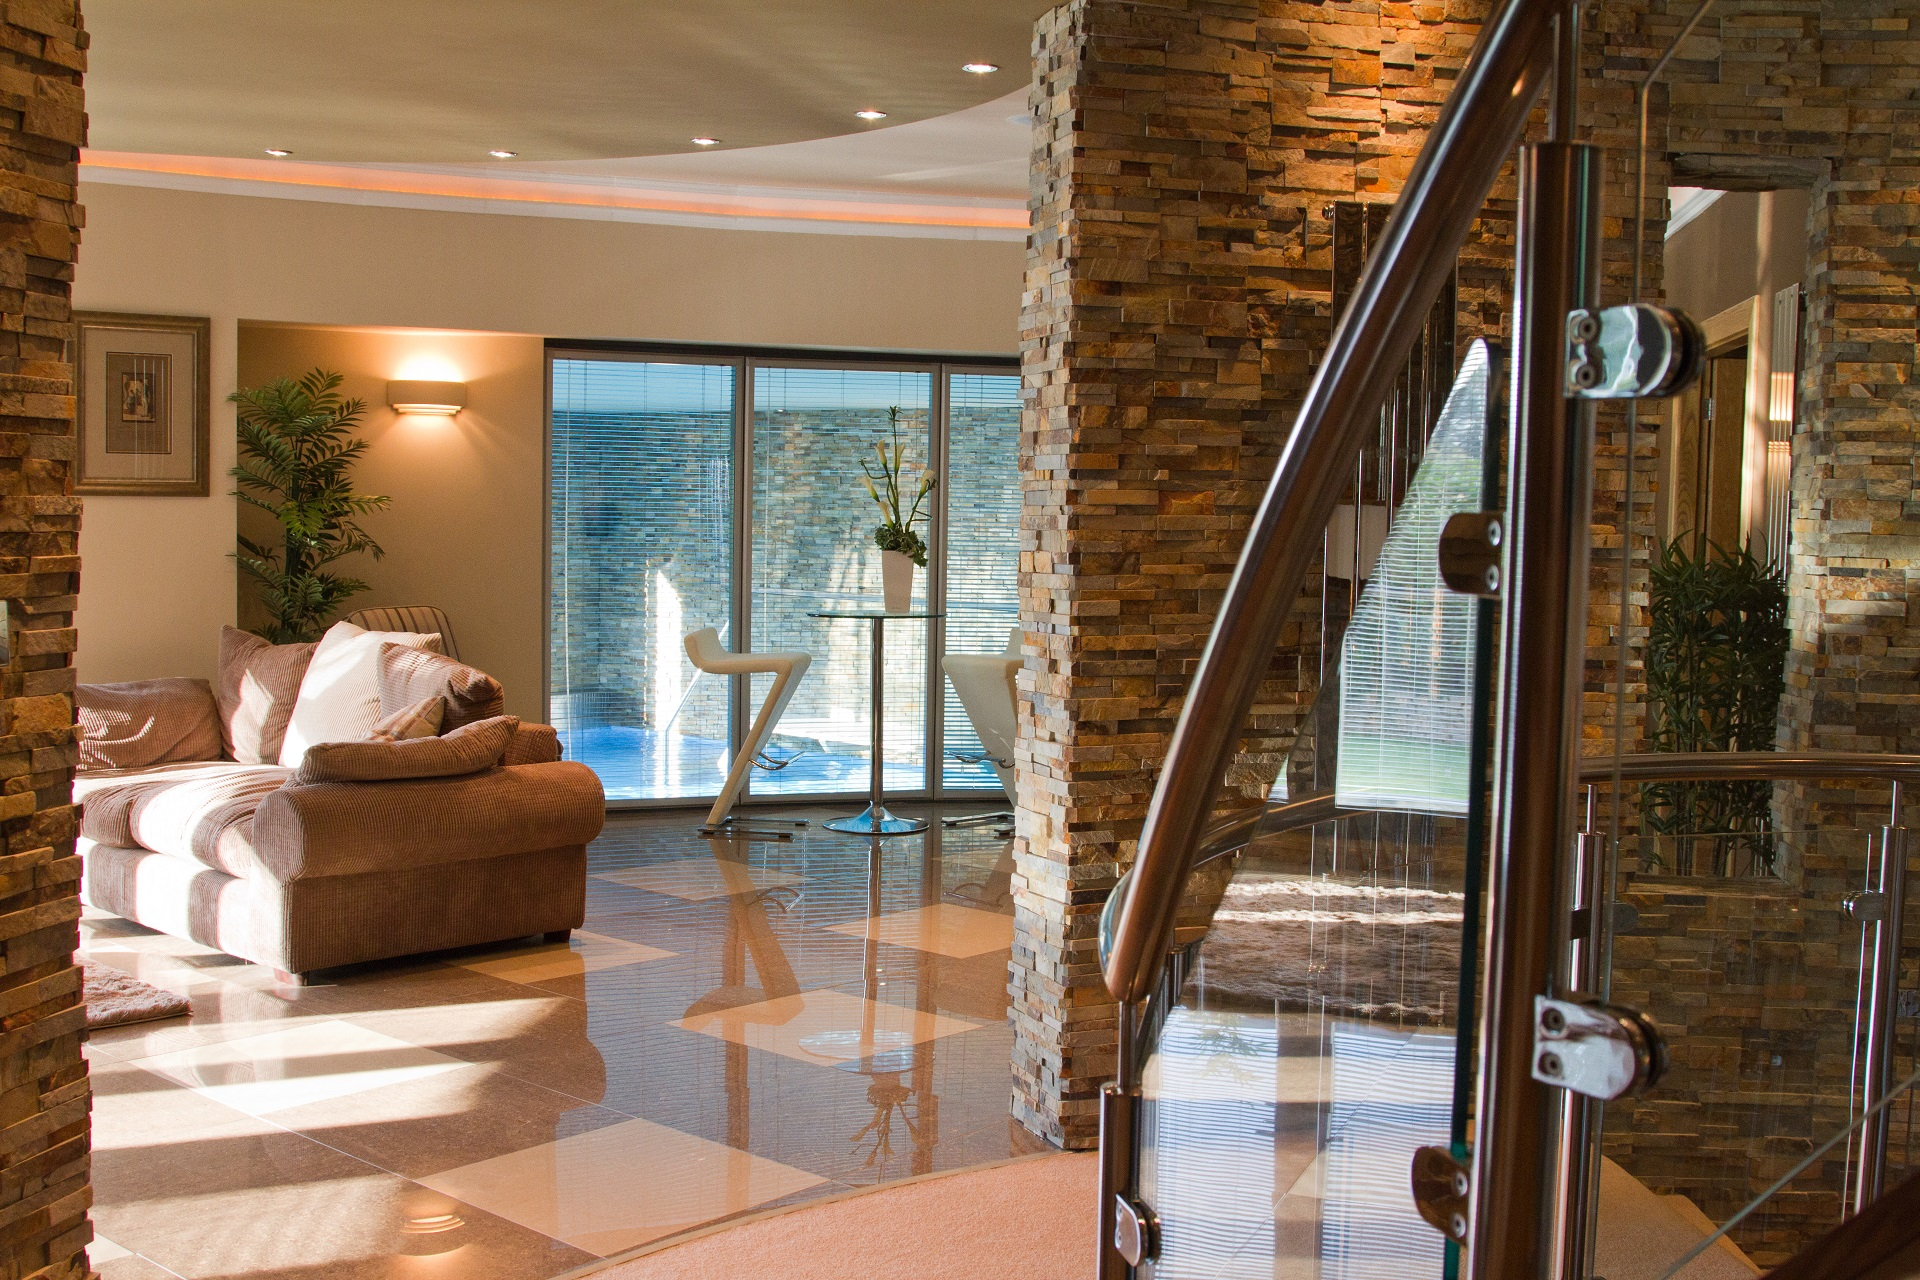 Hall view, swimming pool. Luxury home by Guy Phoenix